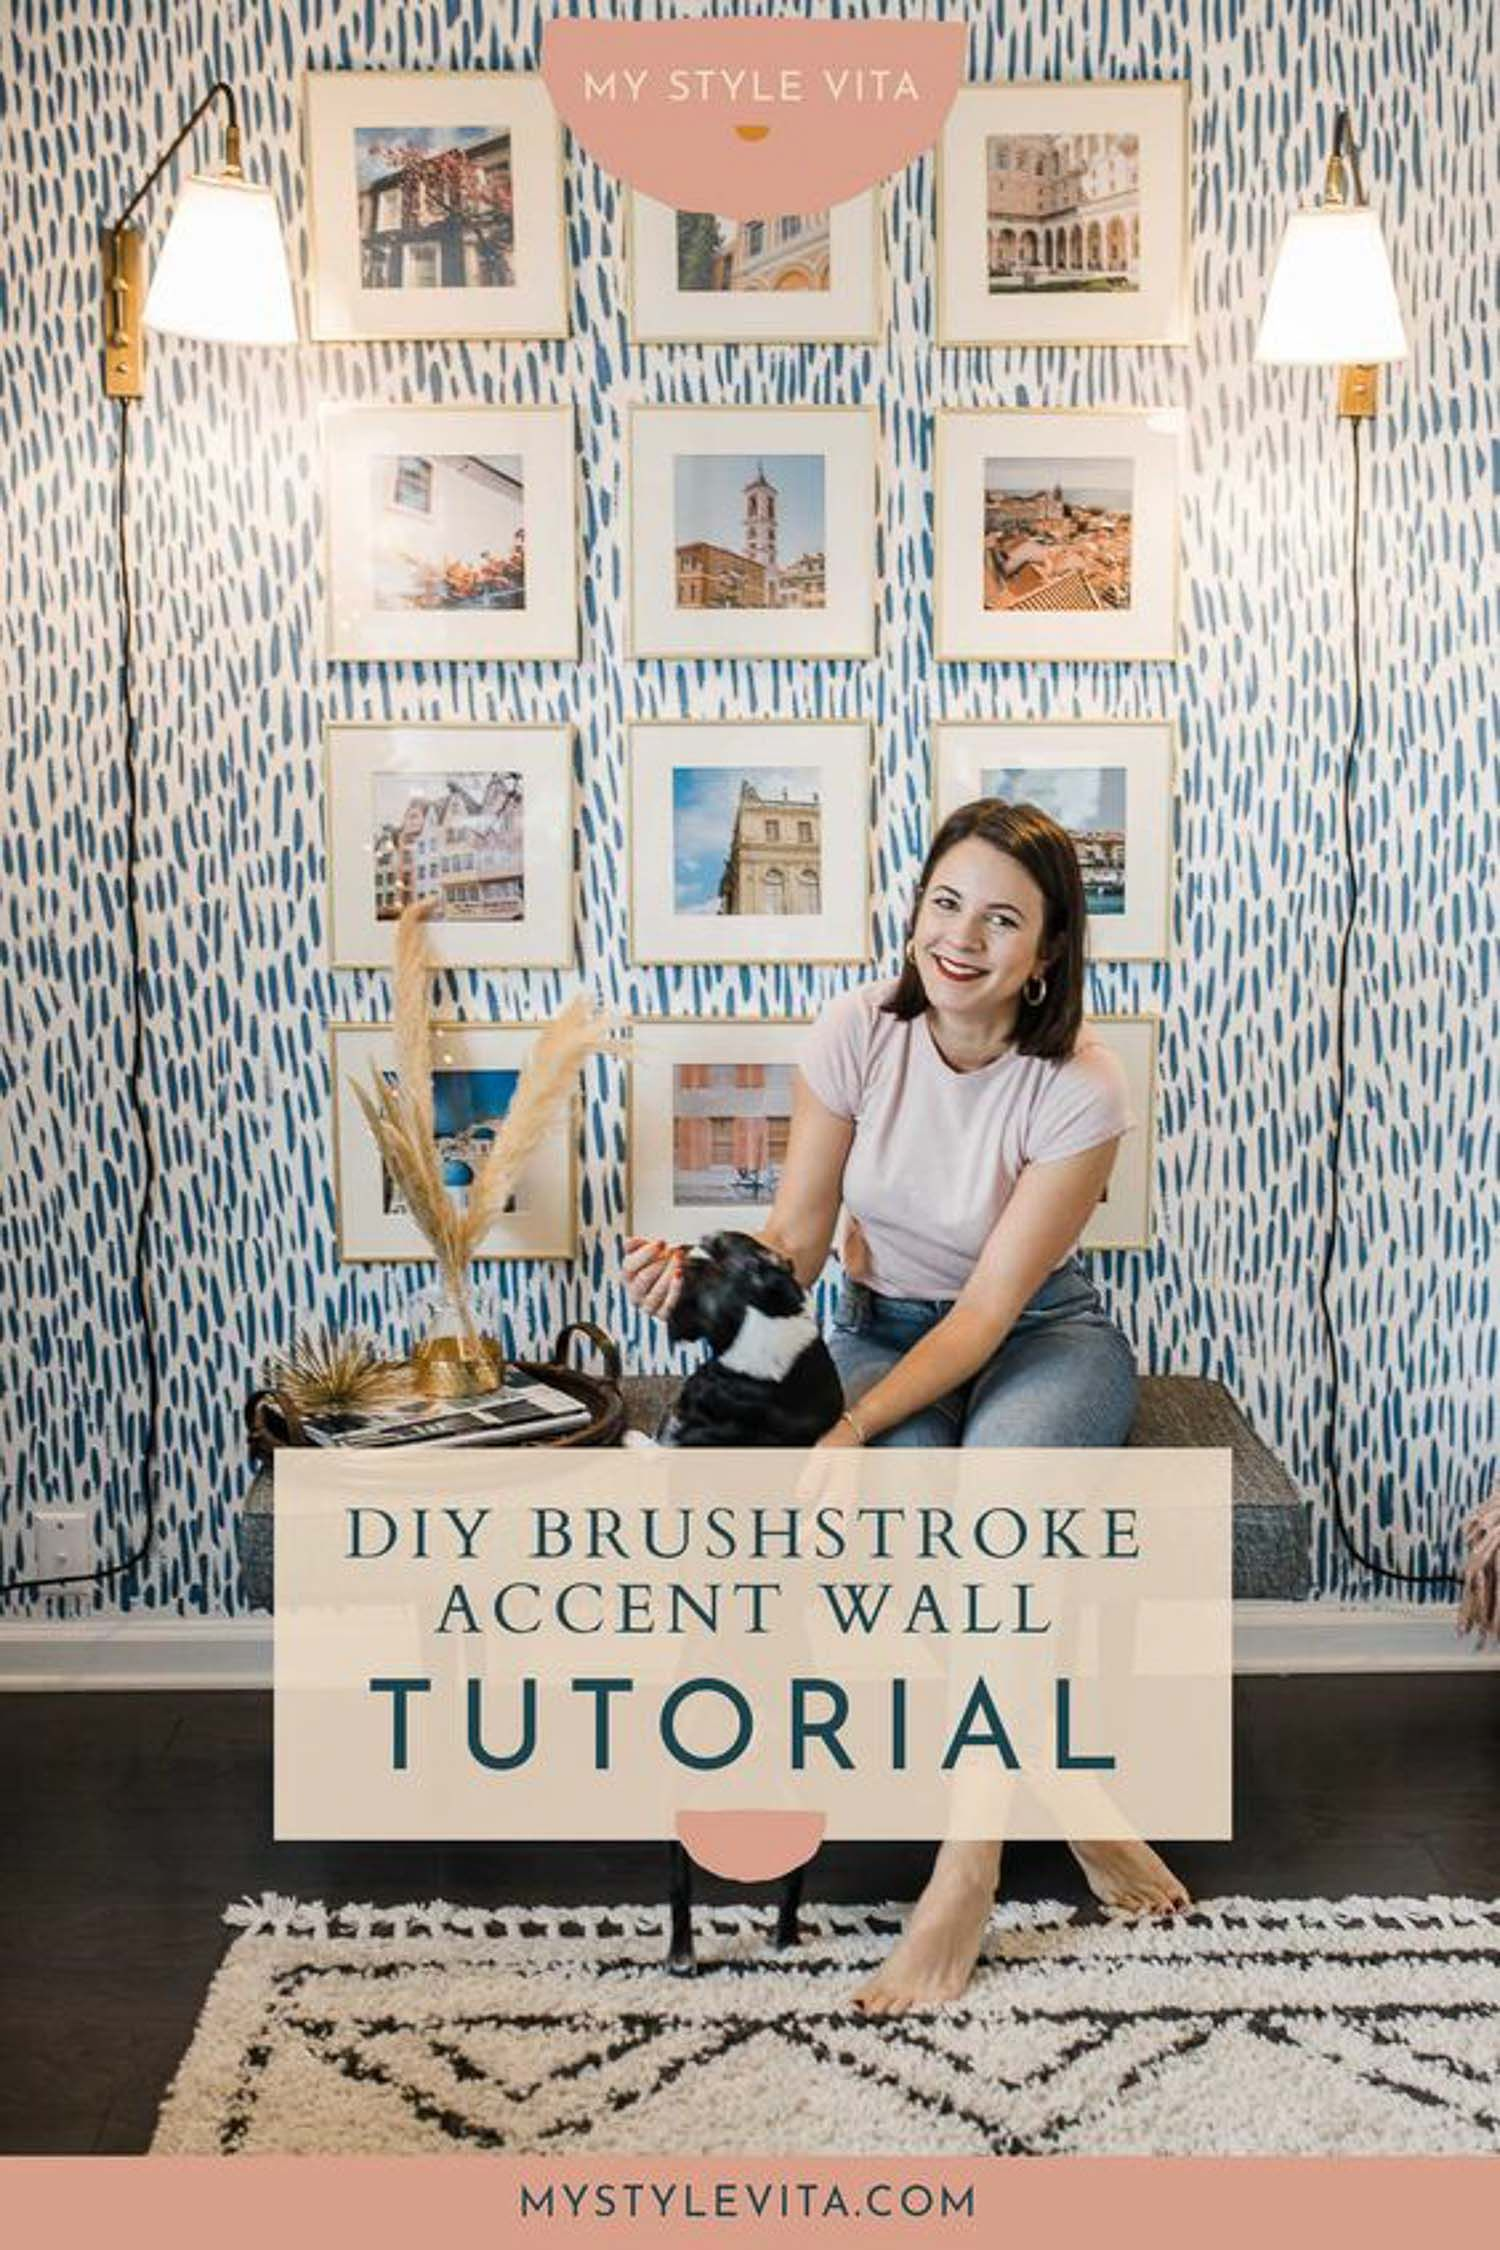 Diy Brushstroke Accent Wall Tutorial In 2020 Accent Wall Diy